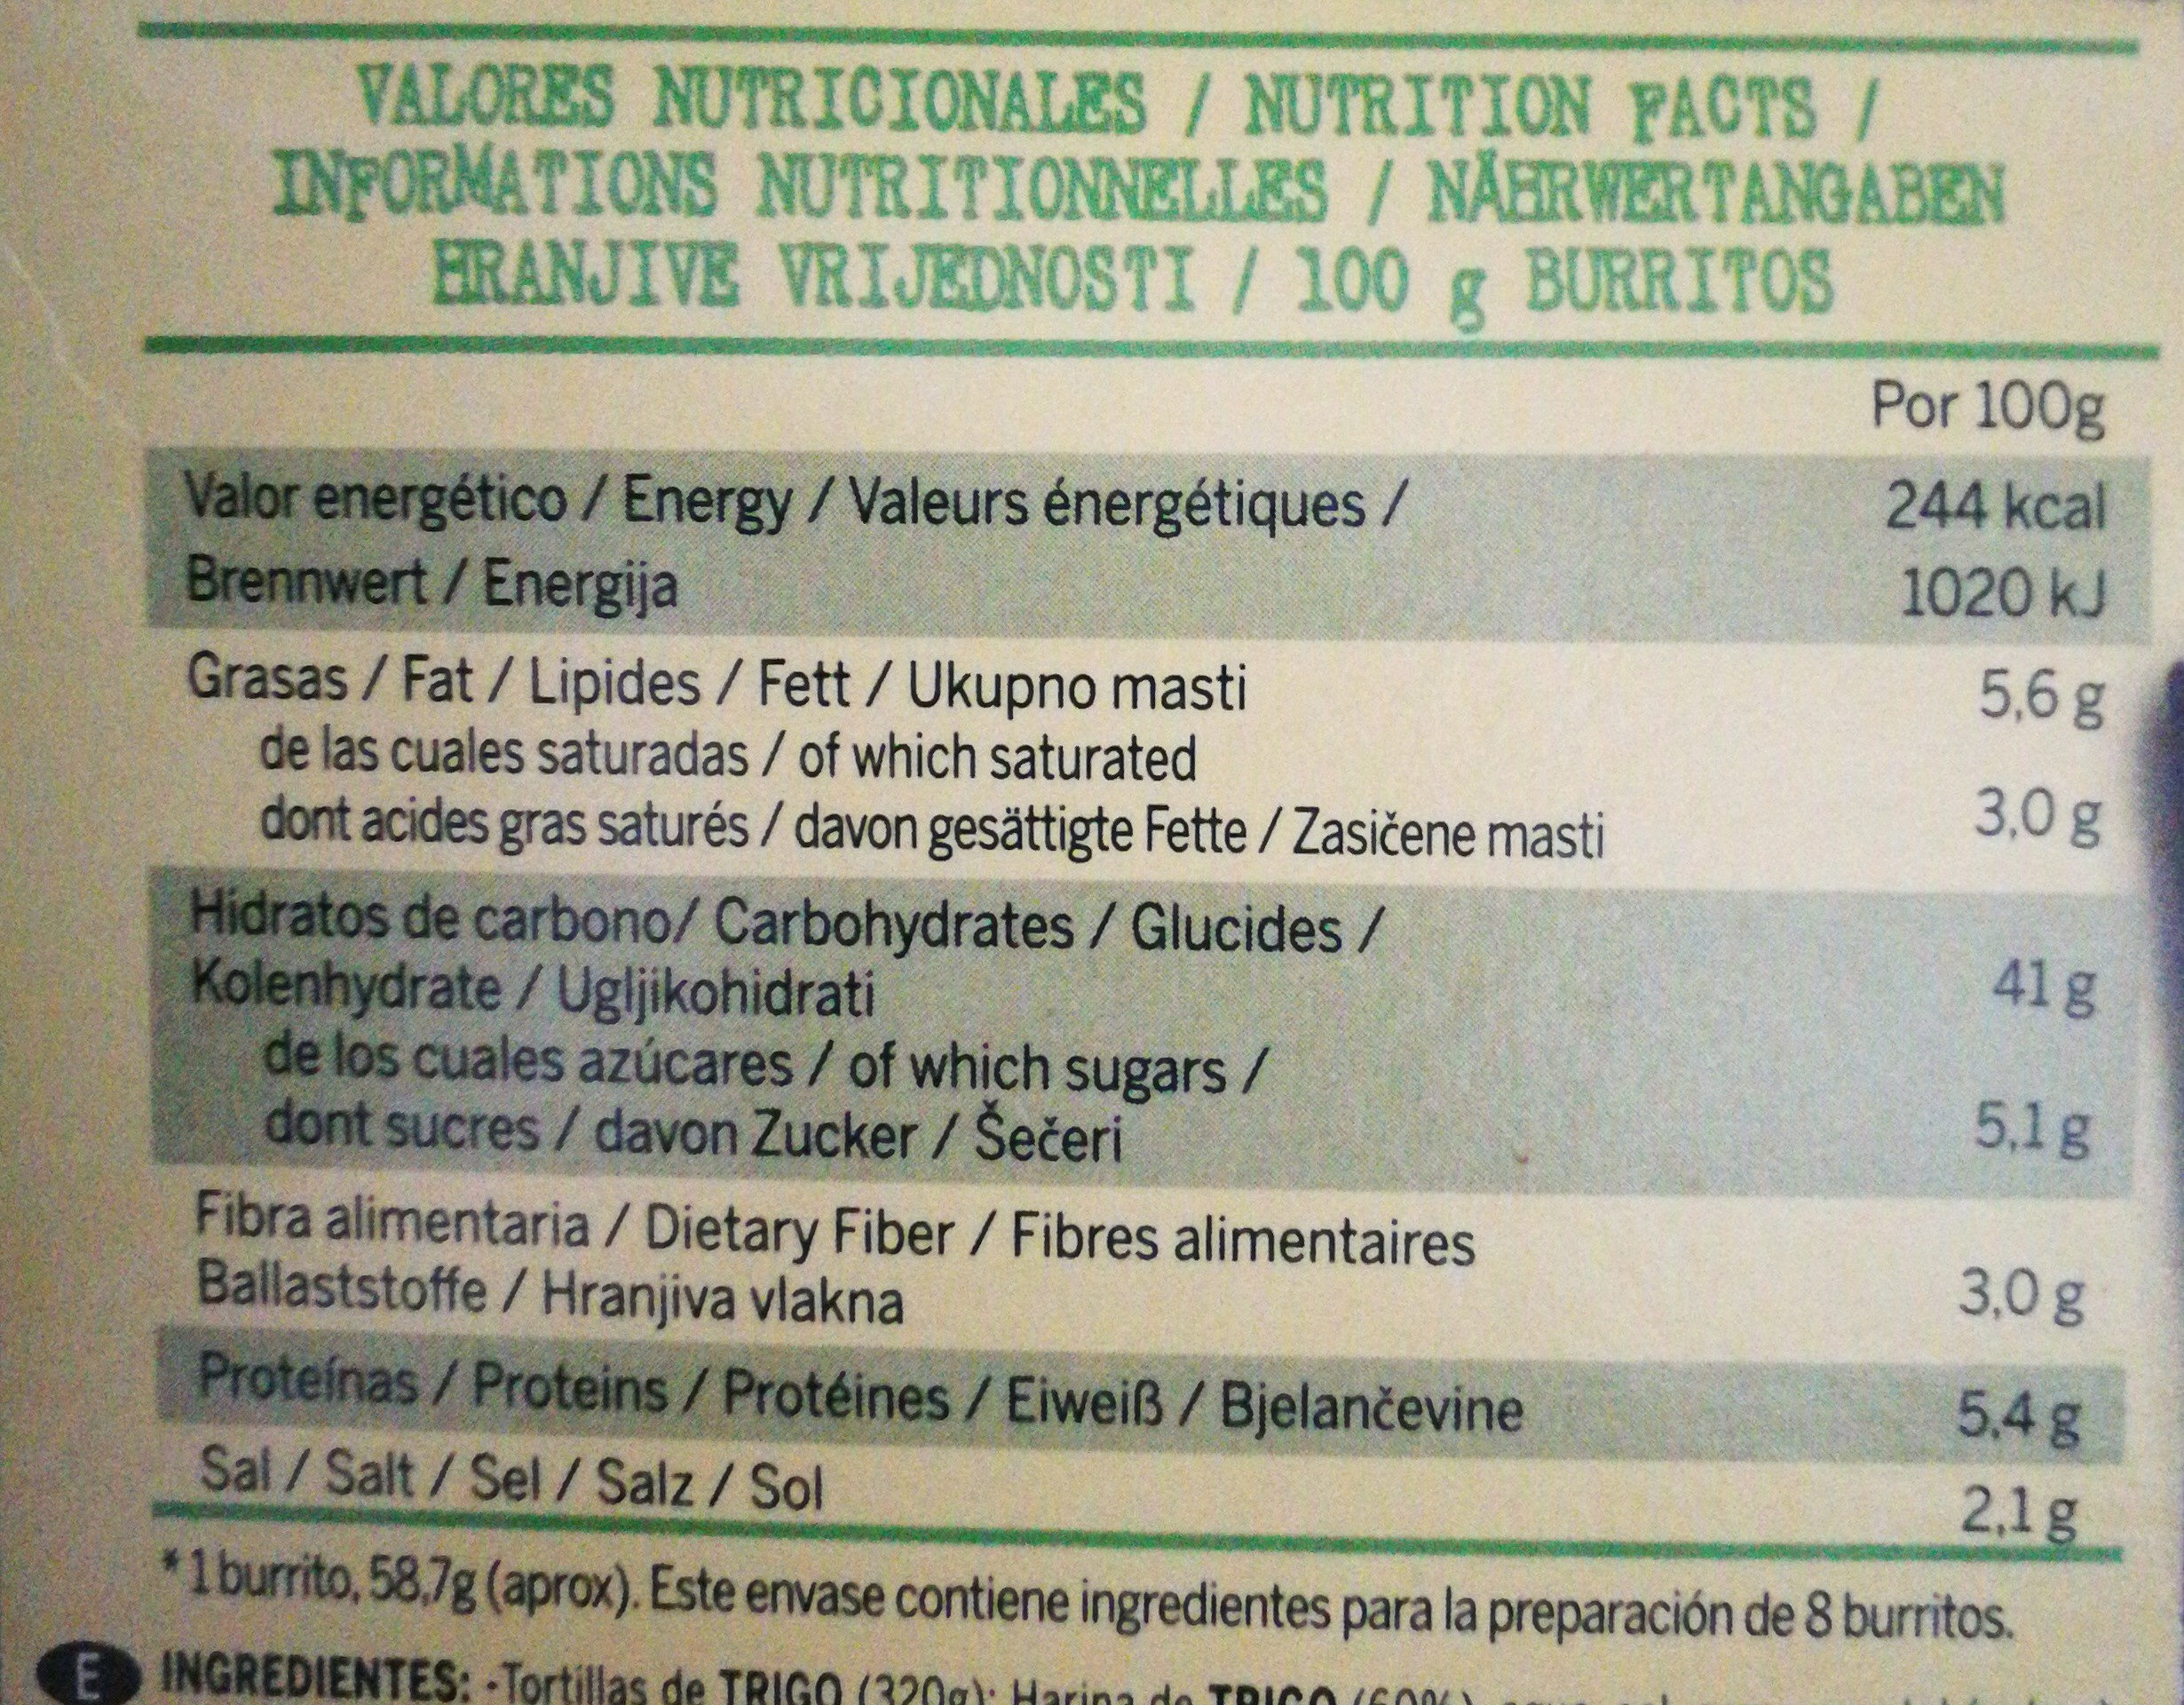 Burritos - Nutrition facts